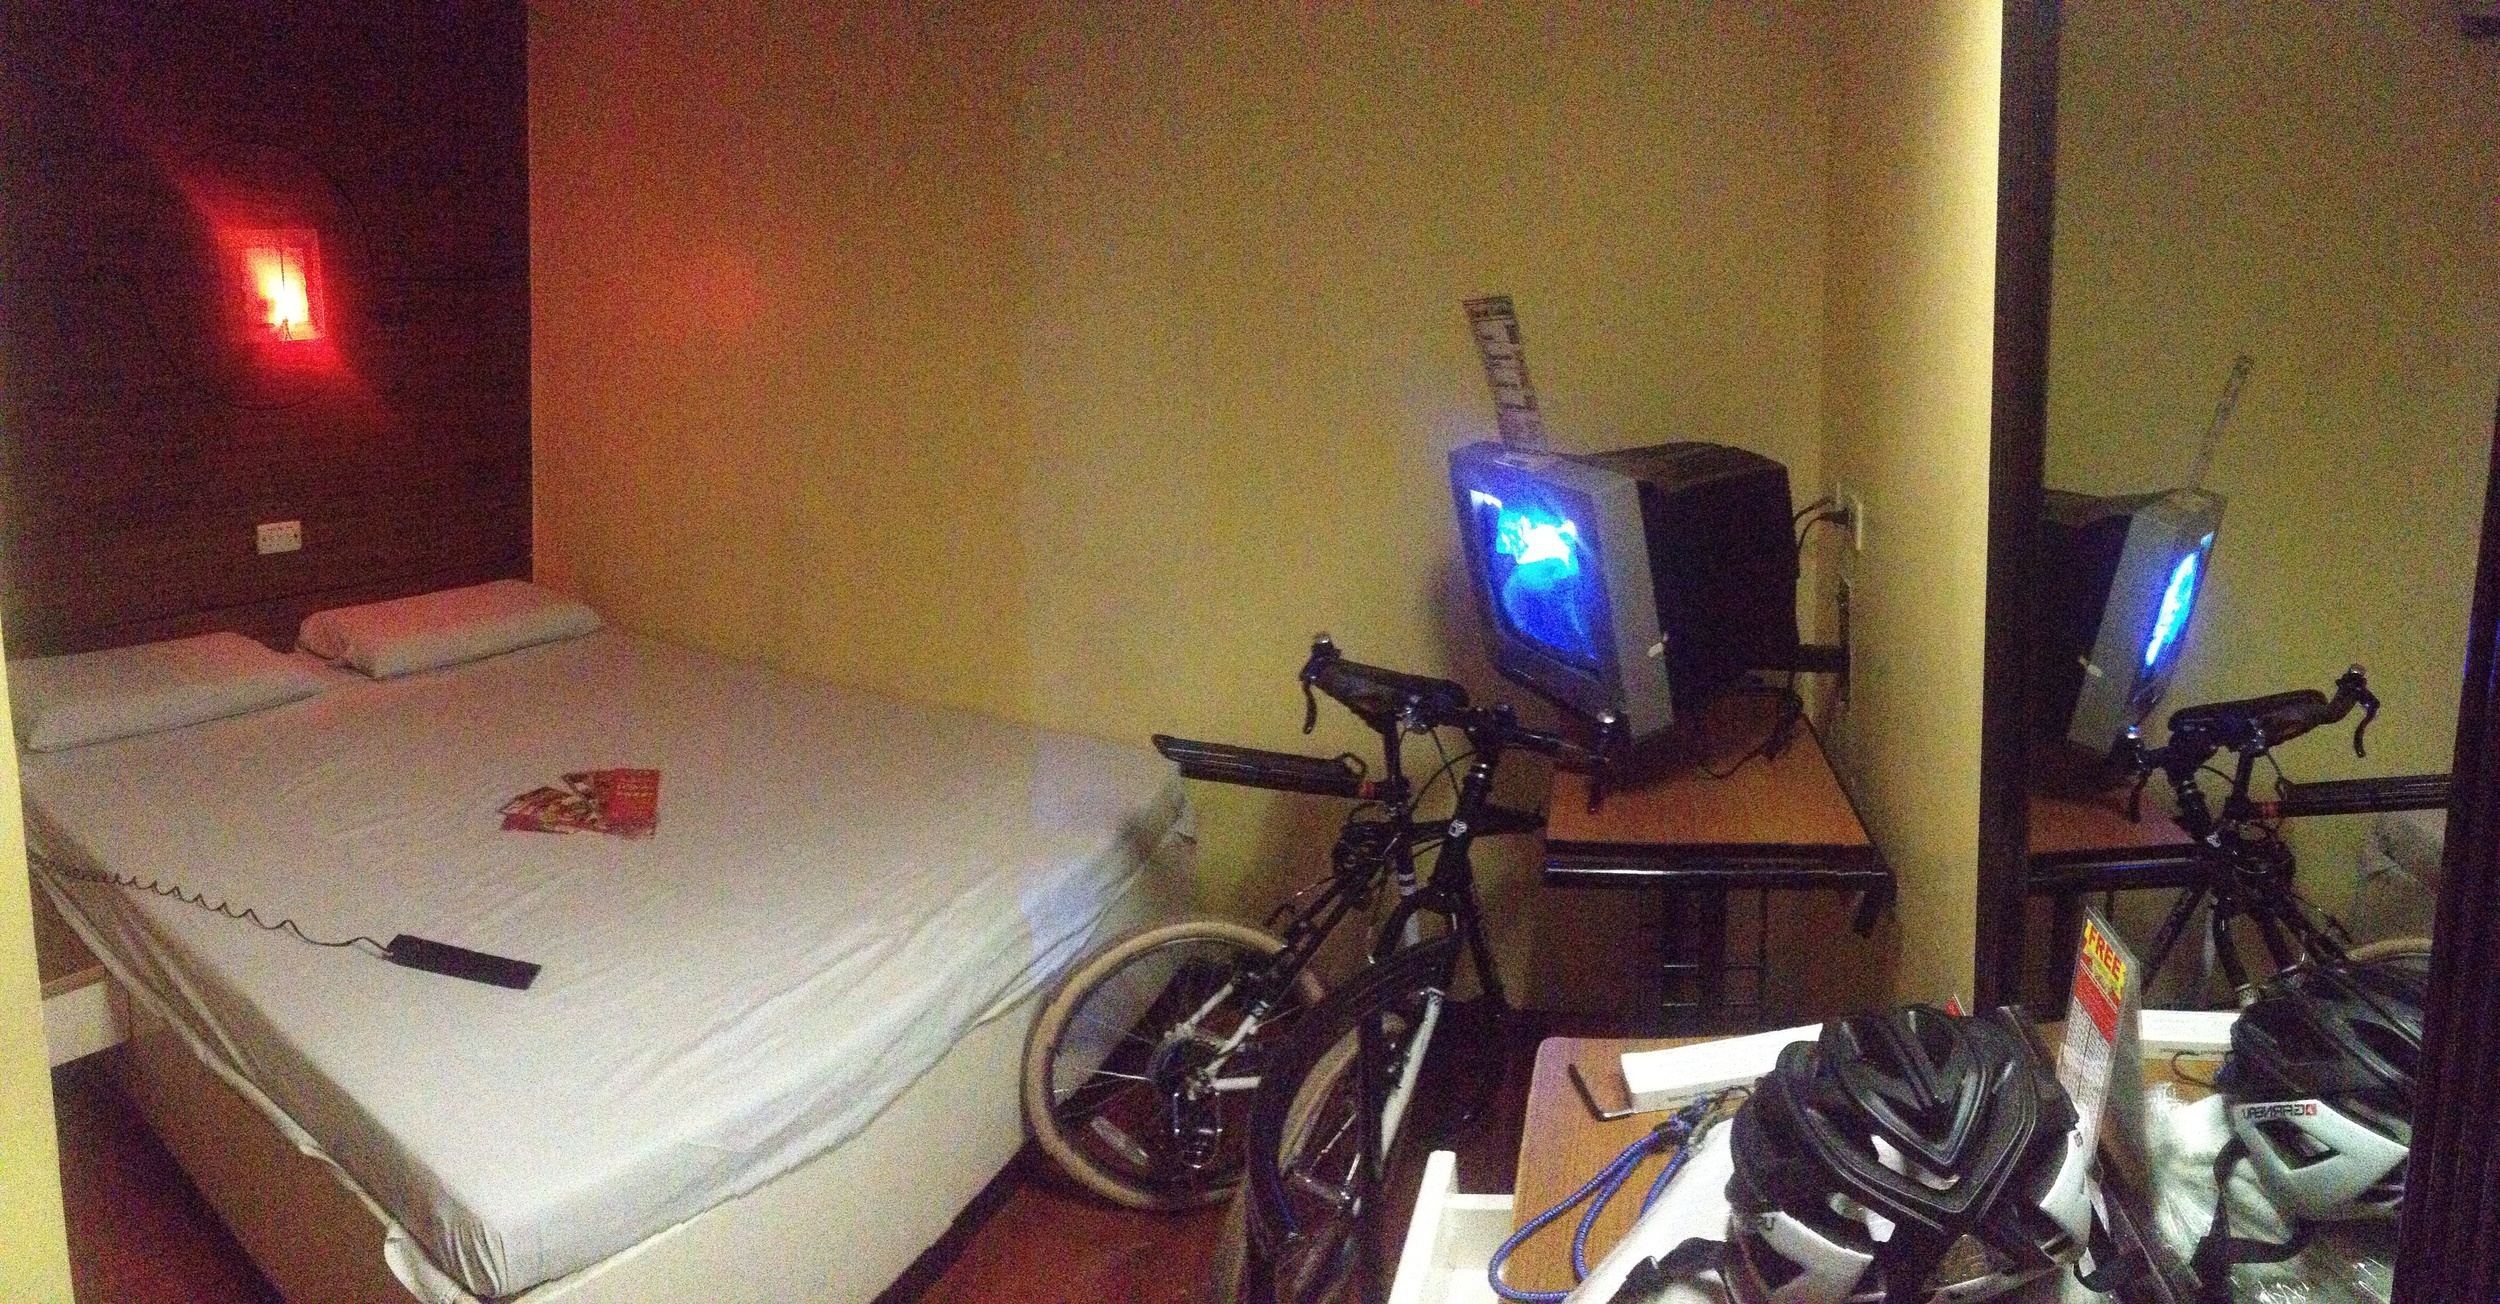 My room at the SOGO for 620 pesos/night.